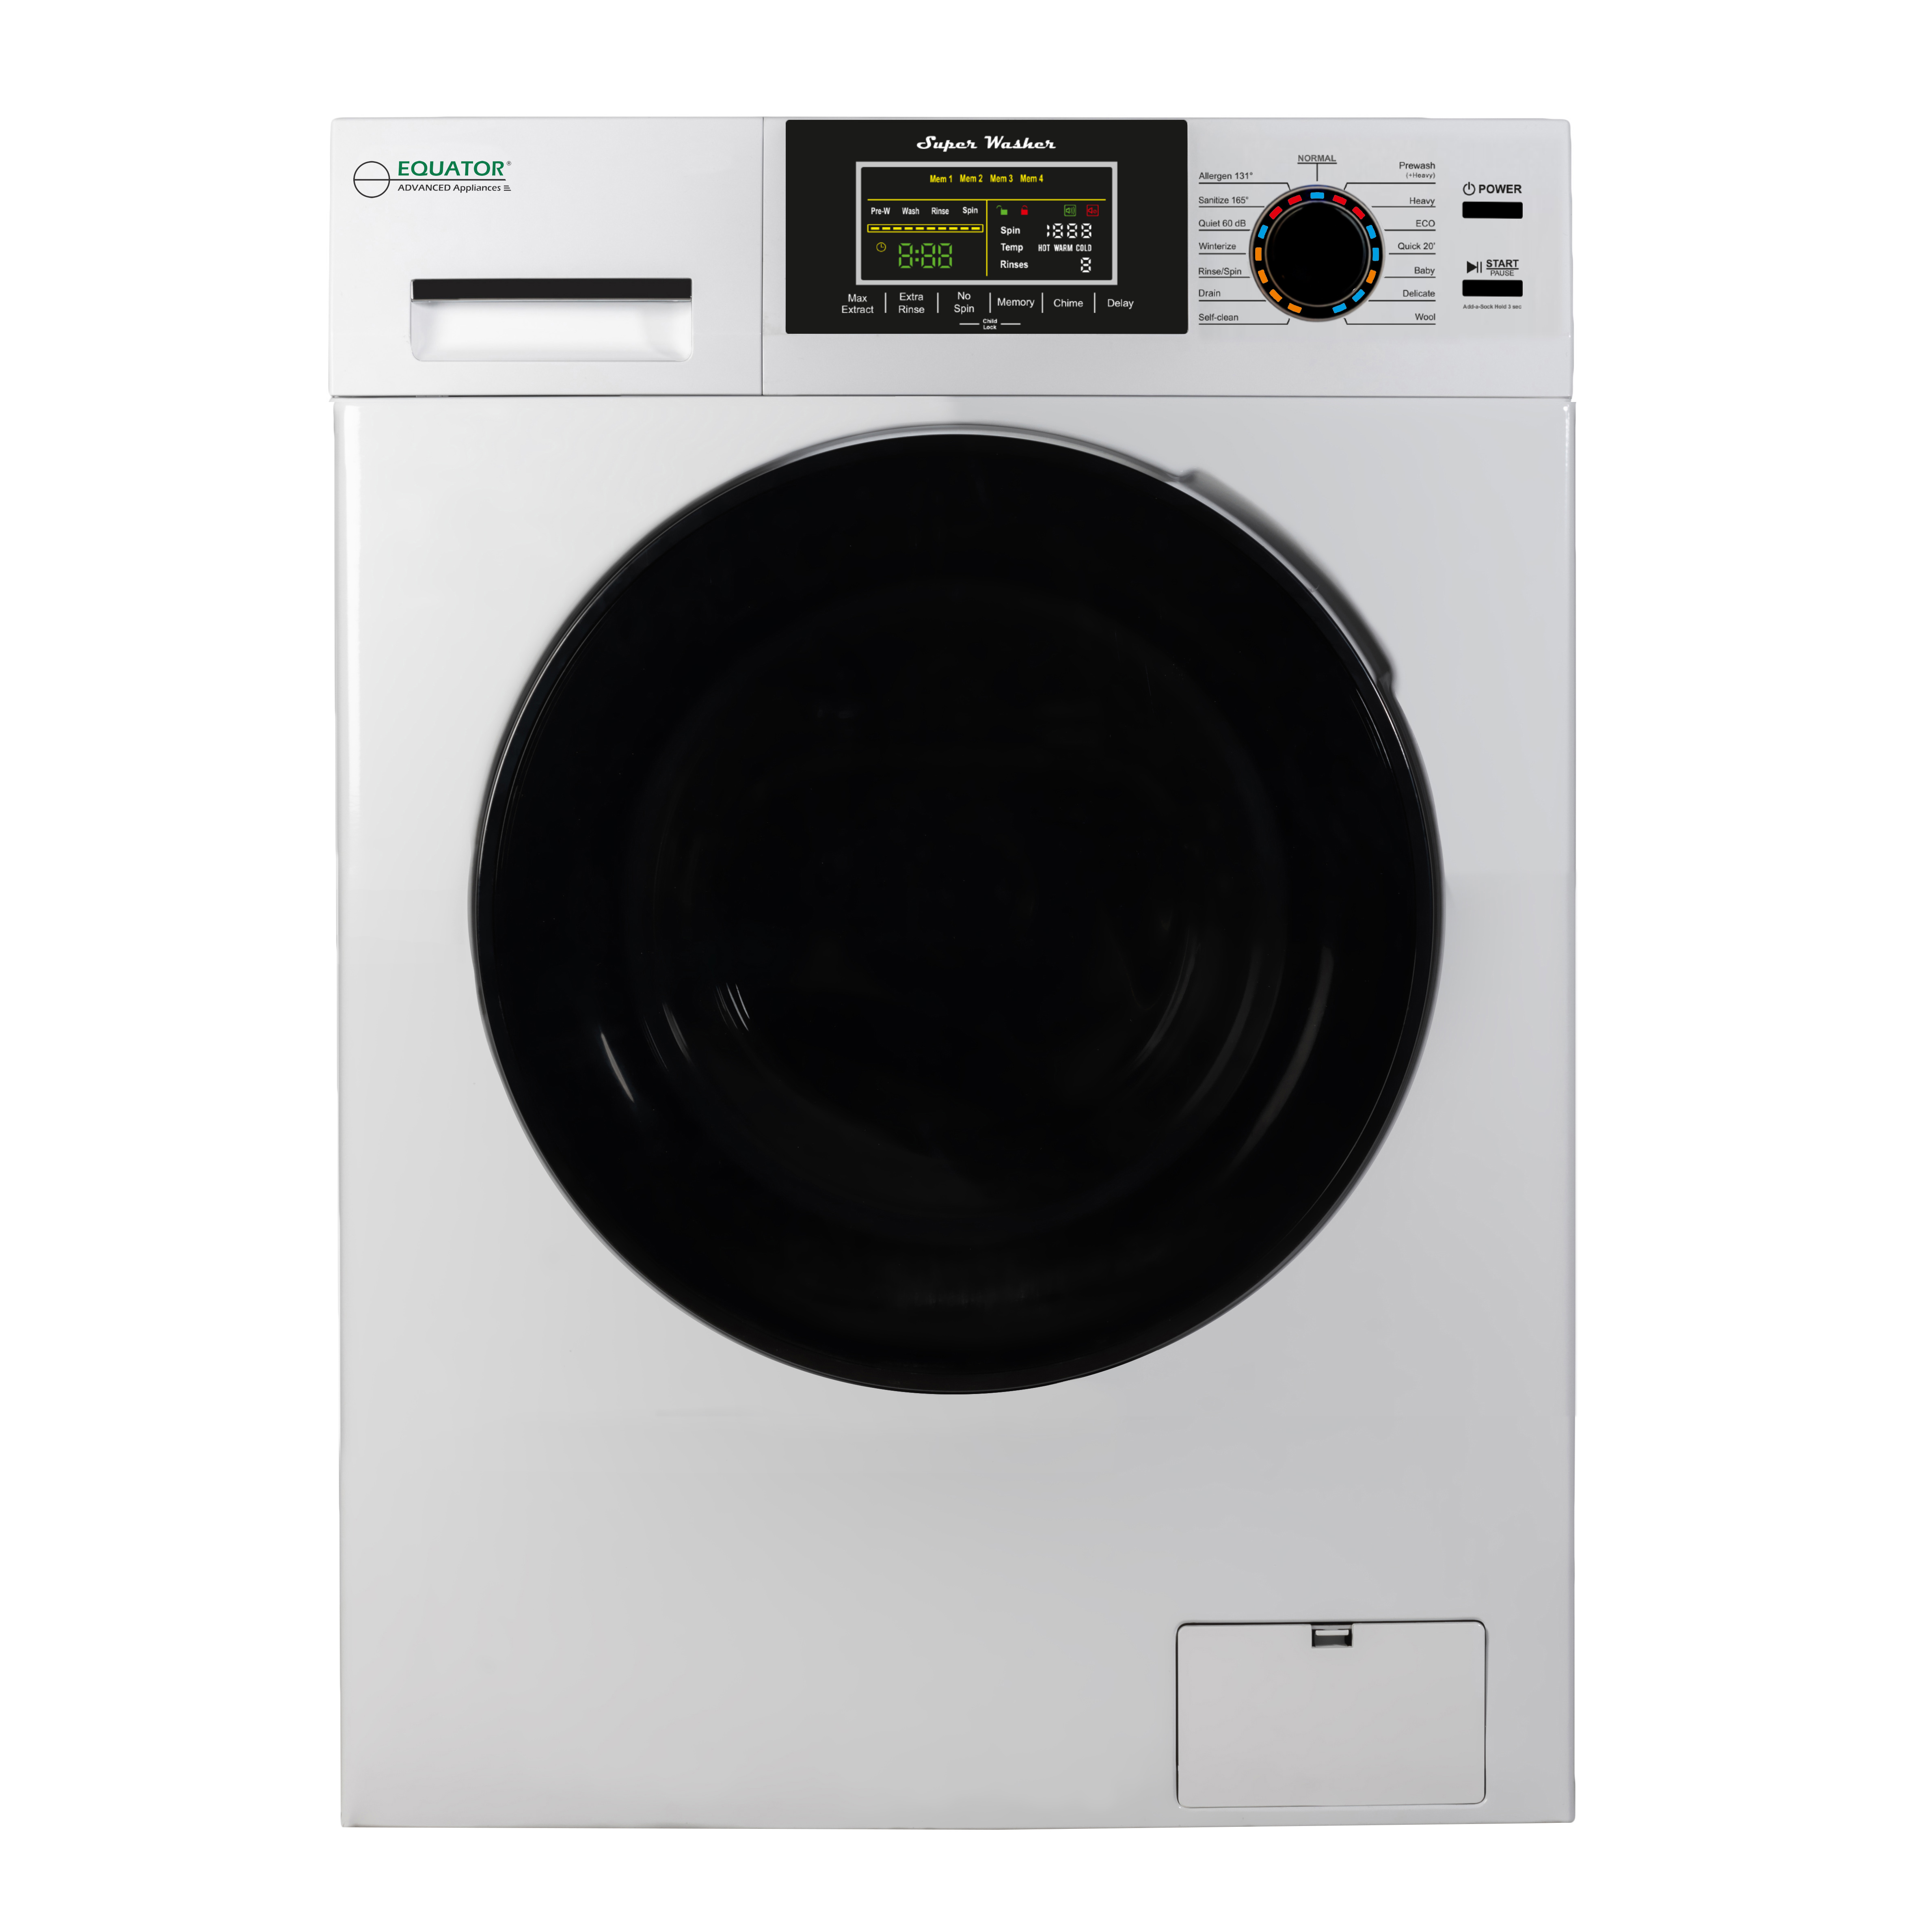 Equator 18 lbs Washer with Sanitize, Allergen and Winterize Features